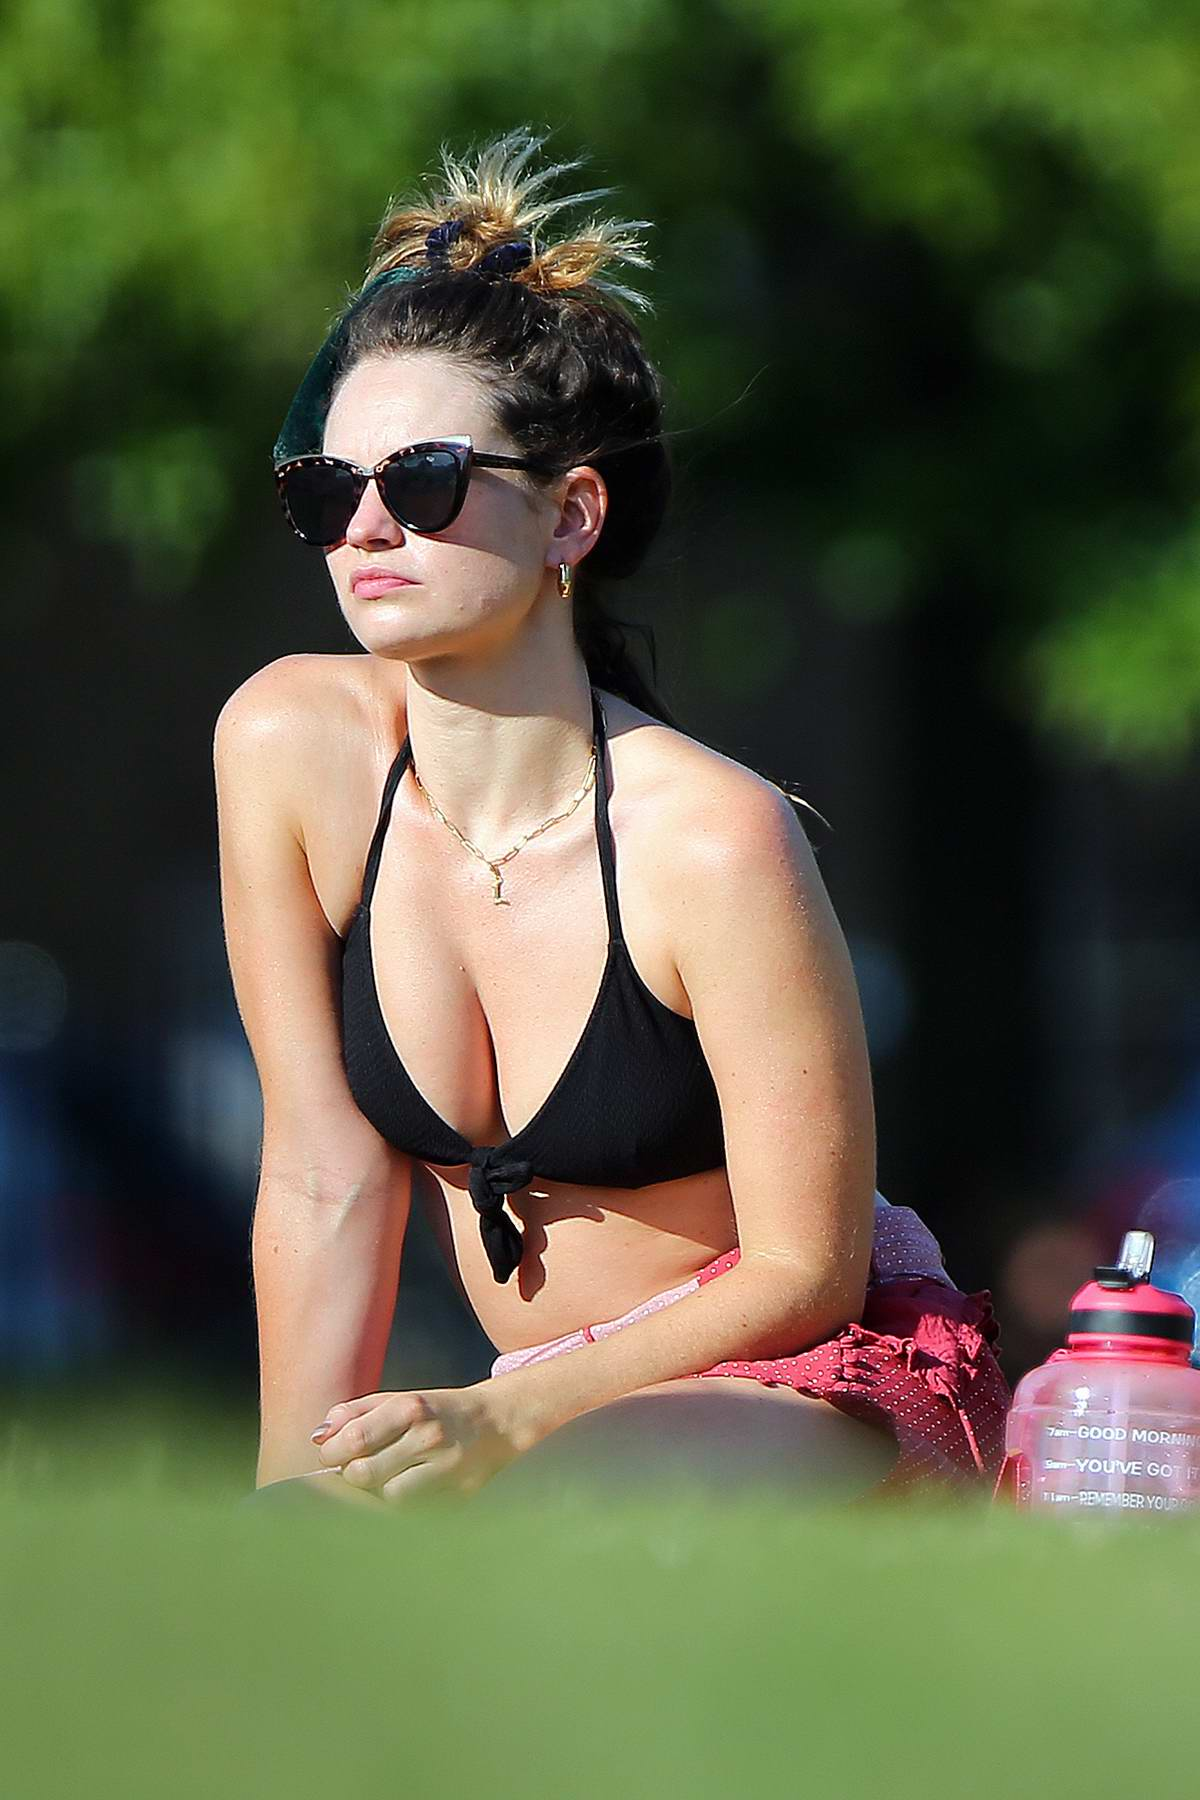 Lily James spotted in a black bikini top catching some sunshine at a park in London, UK